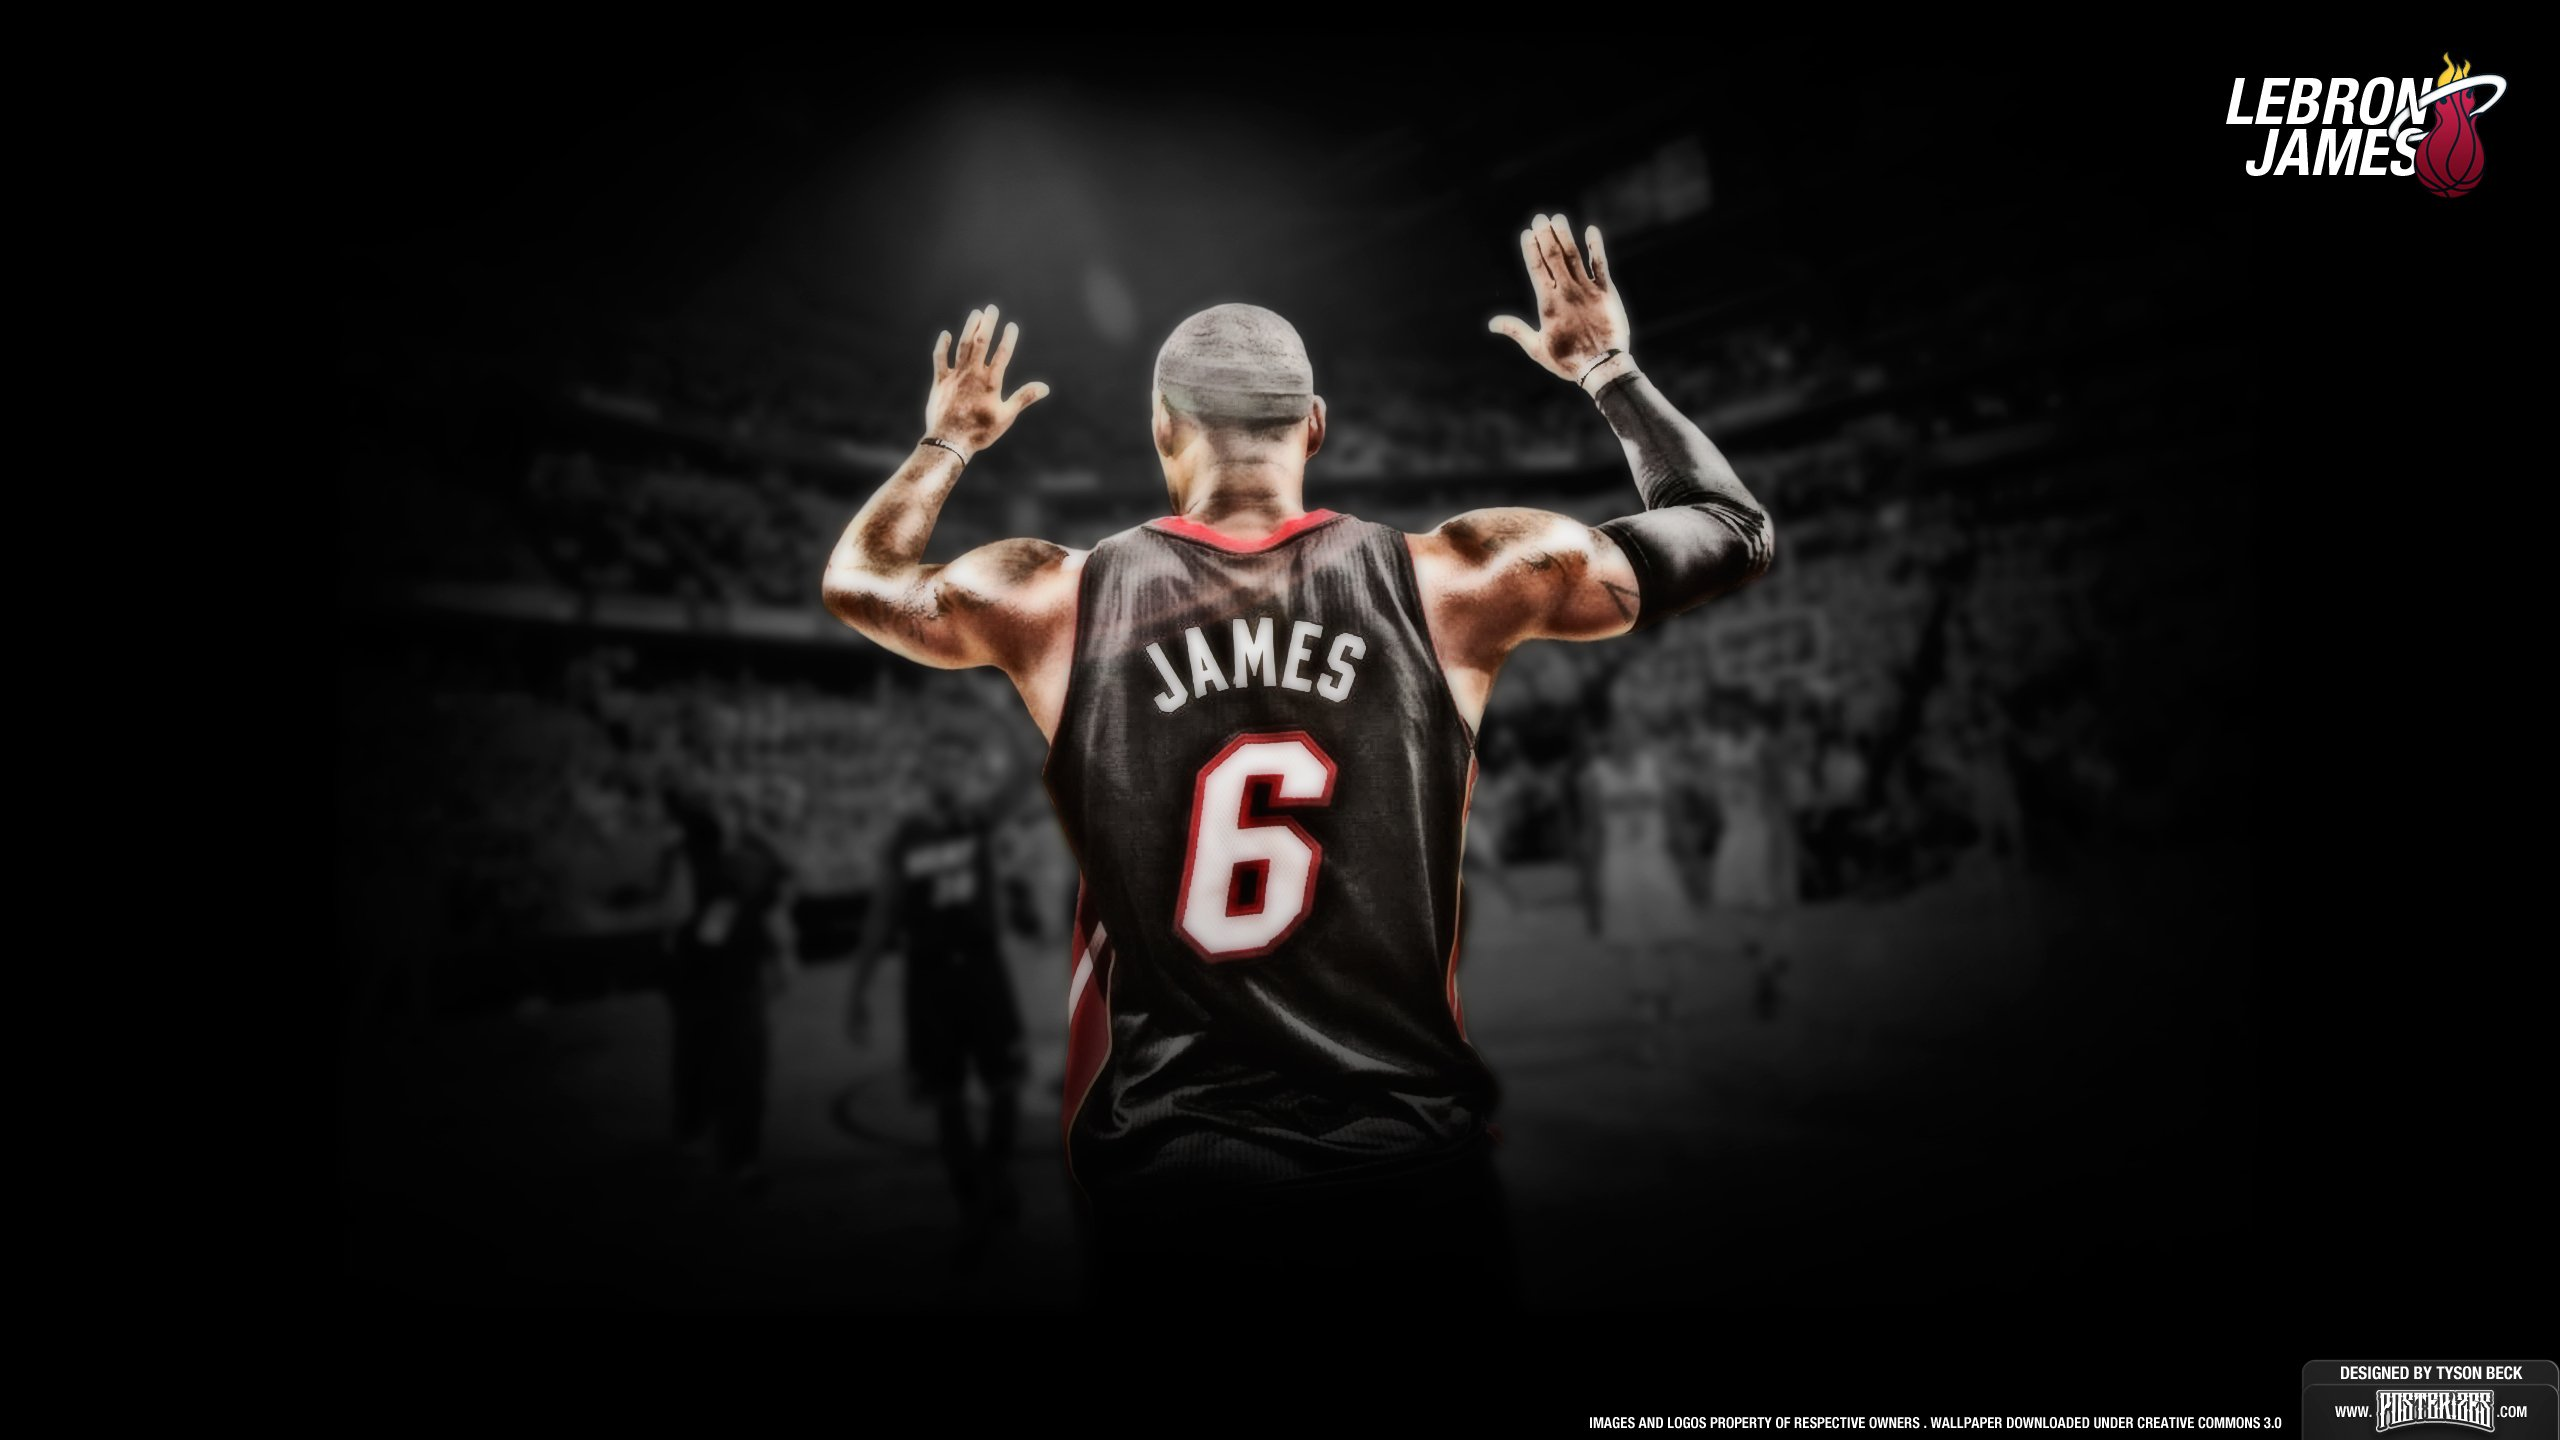 Free Download Lebron James Miami Heat Wallpaper 1371240 2560x1440